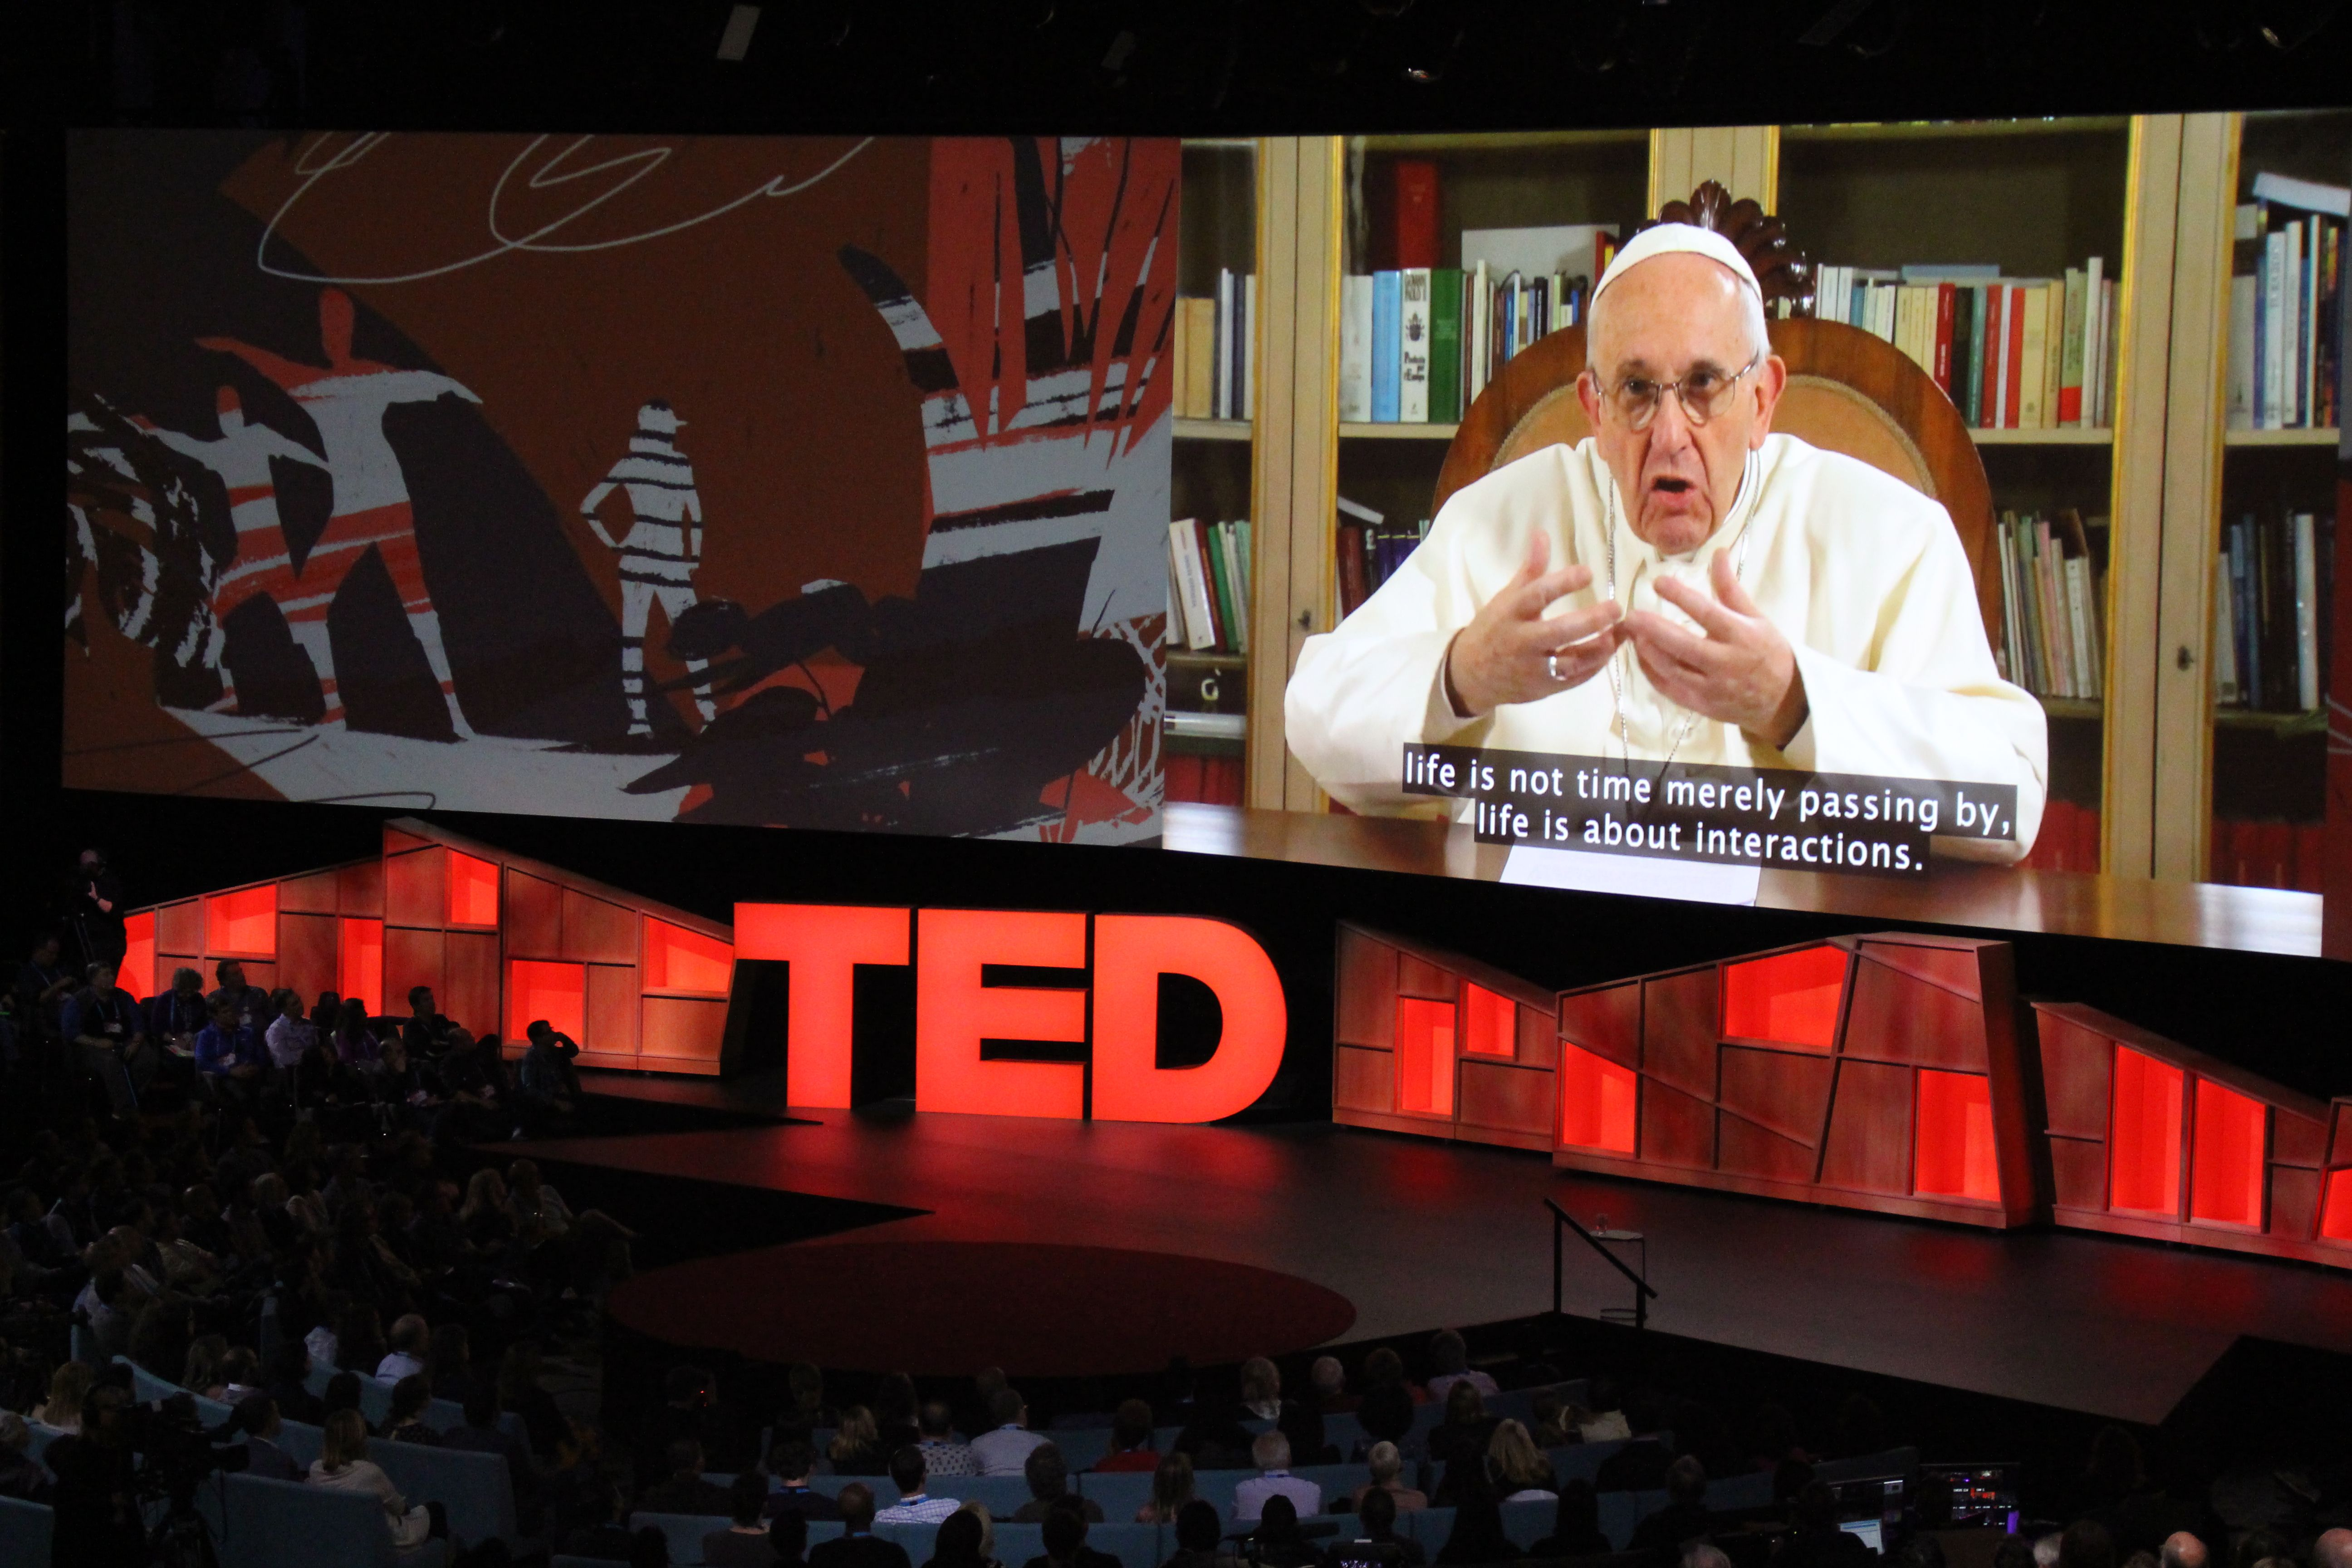 Pope Francis speaks during the TED Conference, urging people to connect with and understand others, in Vancouver, Canada, April 25, 2017.